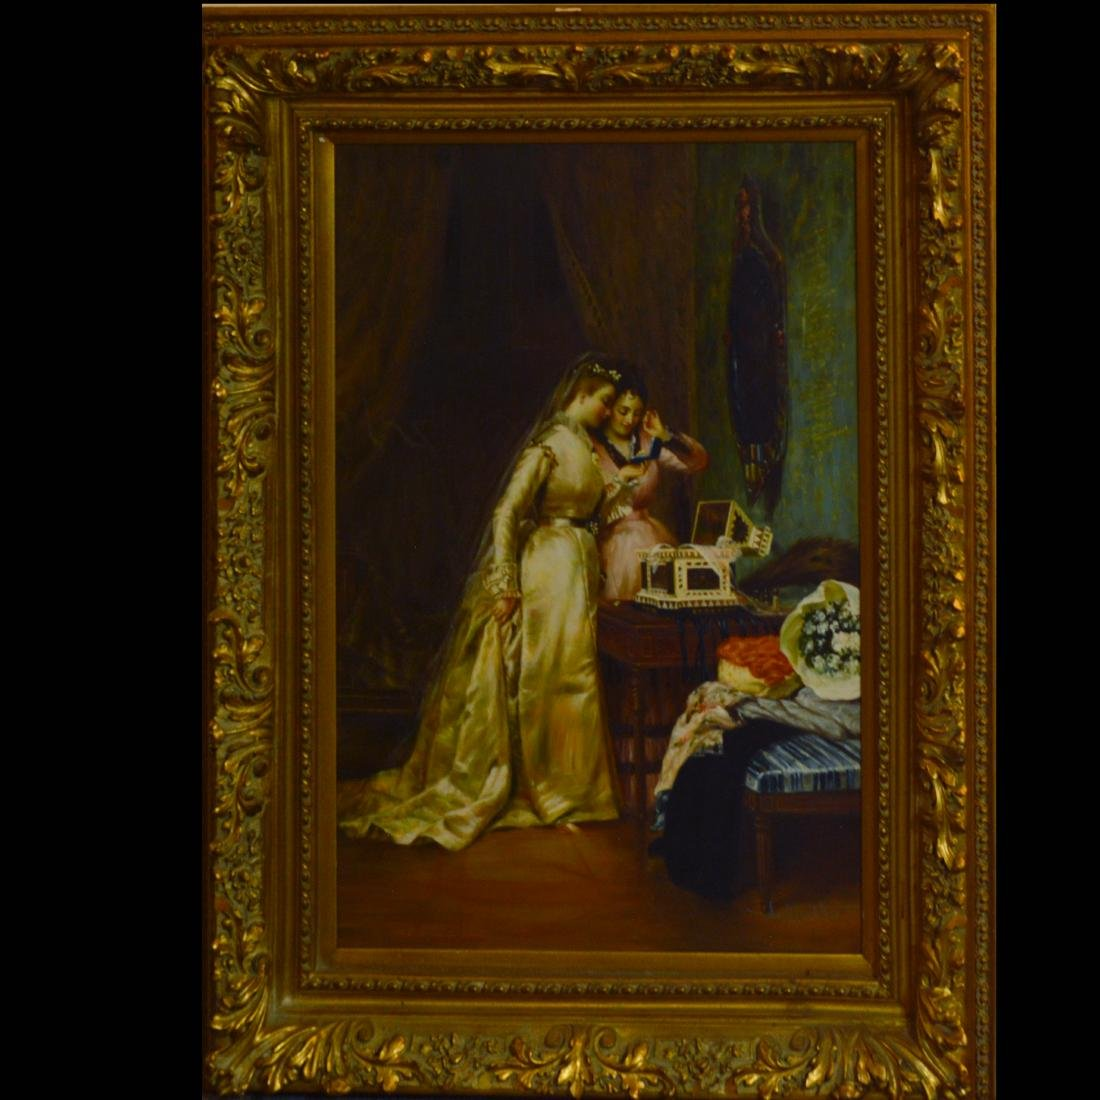 Ornately framed oil painting